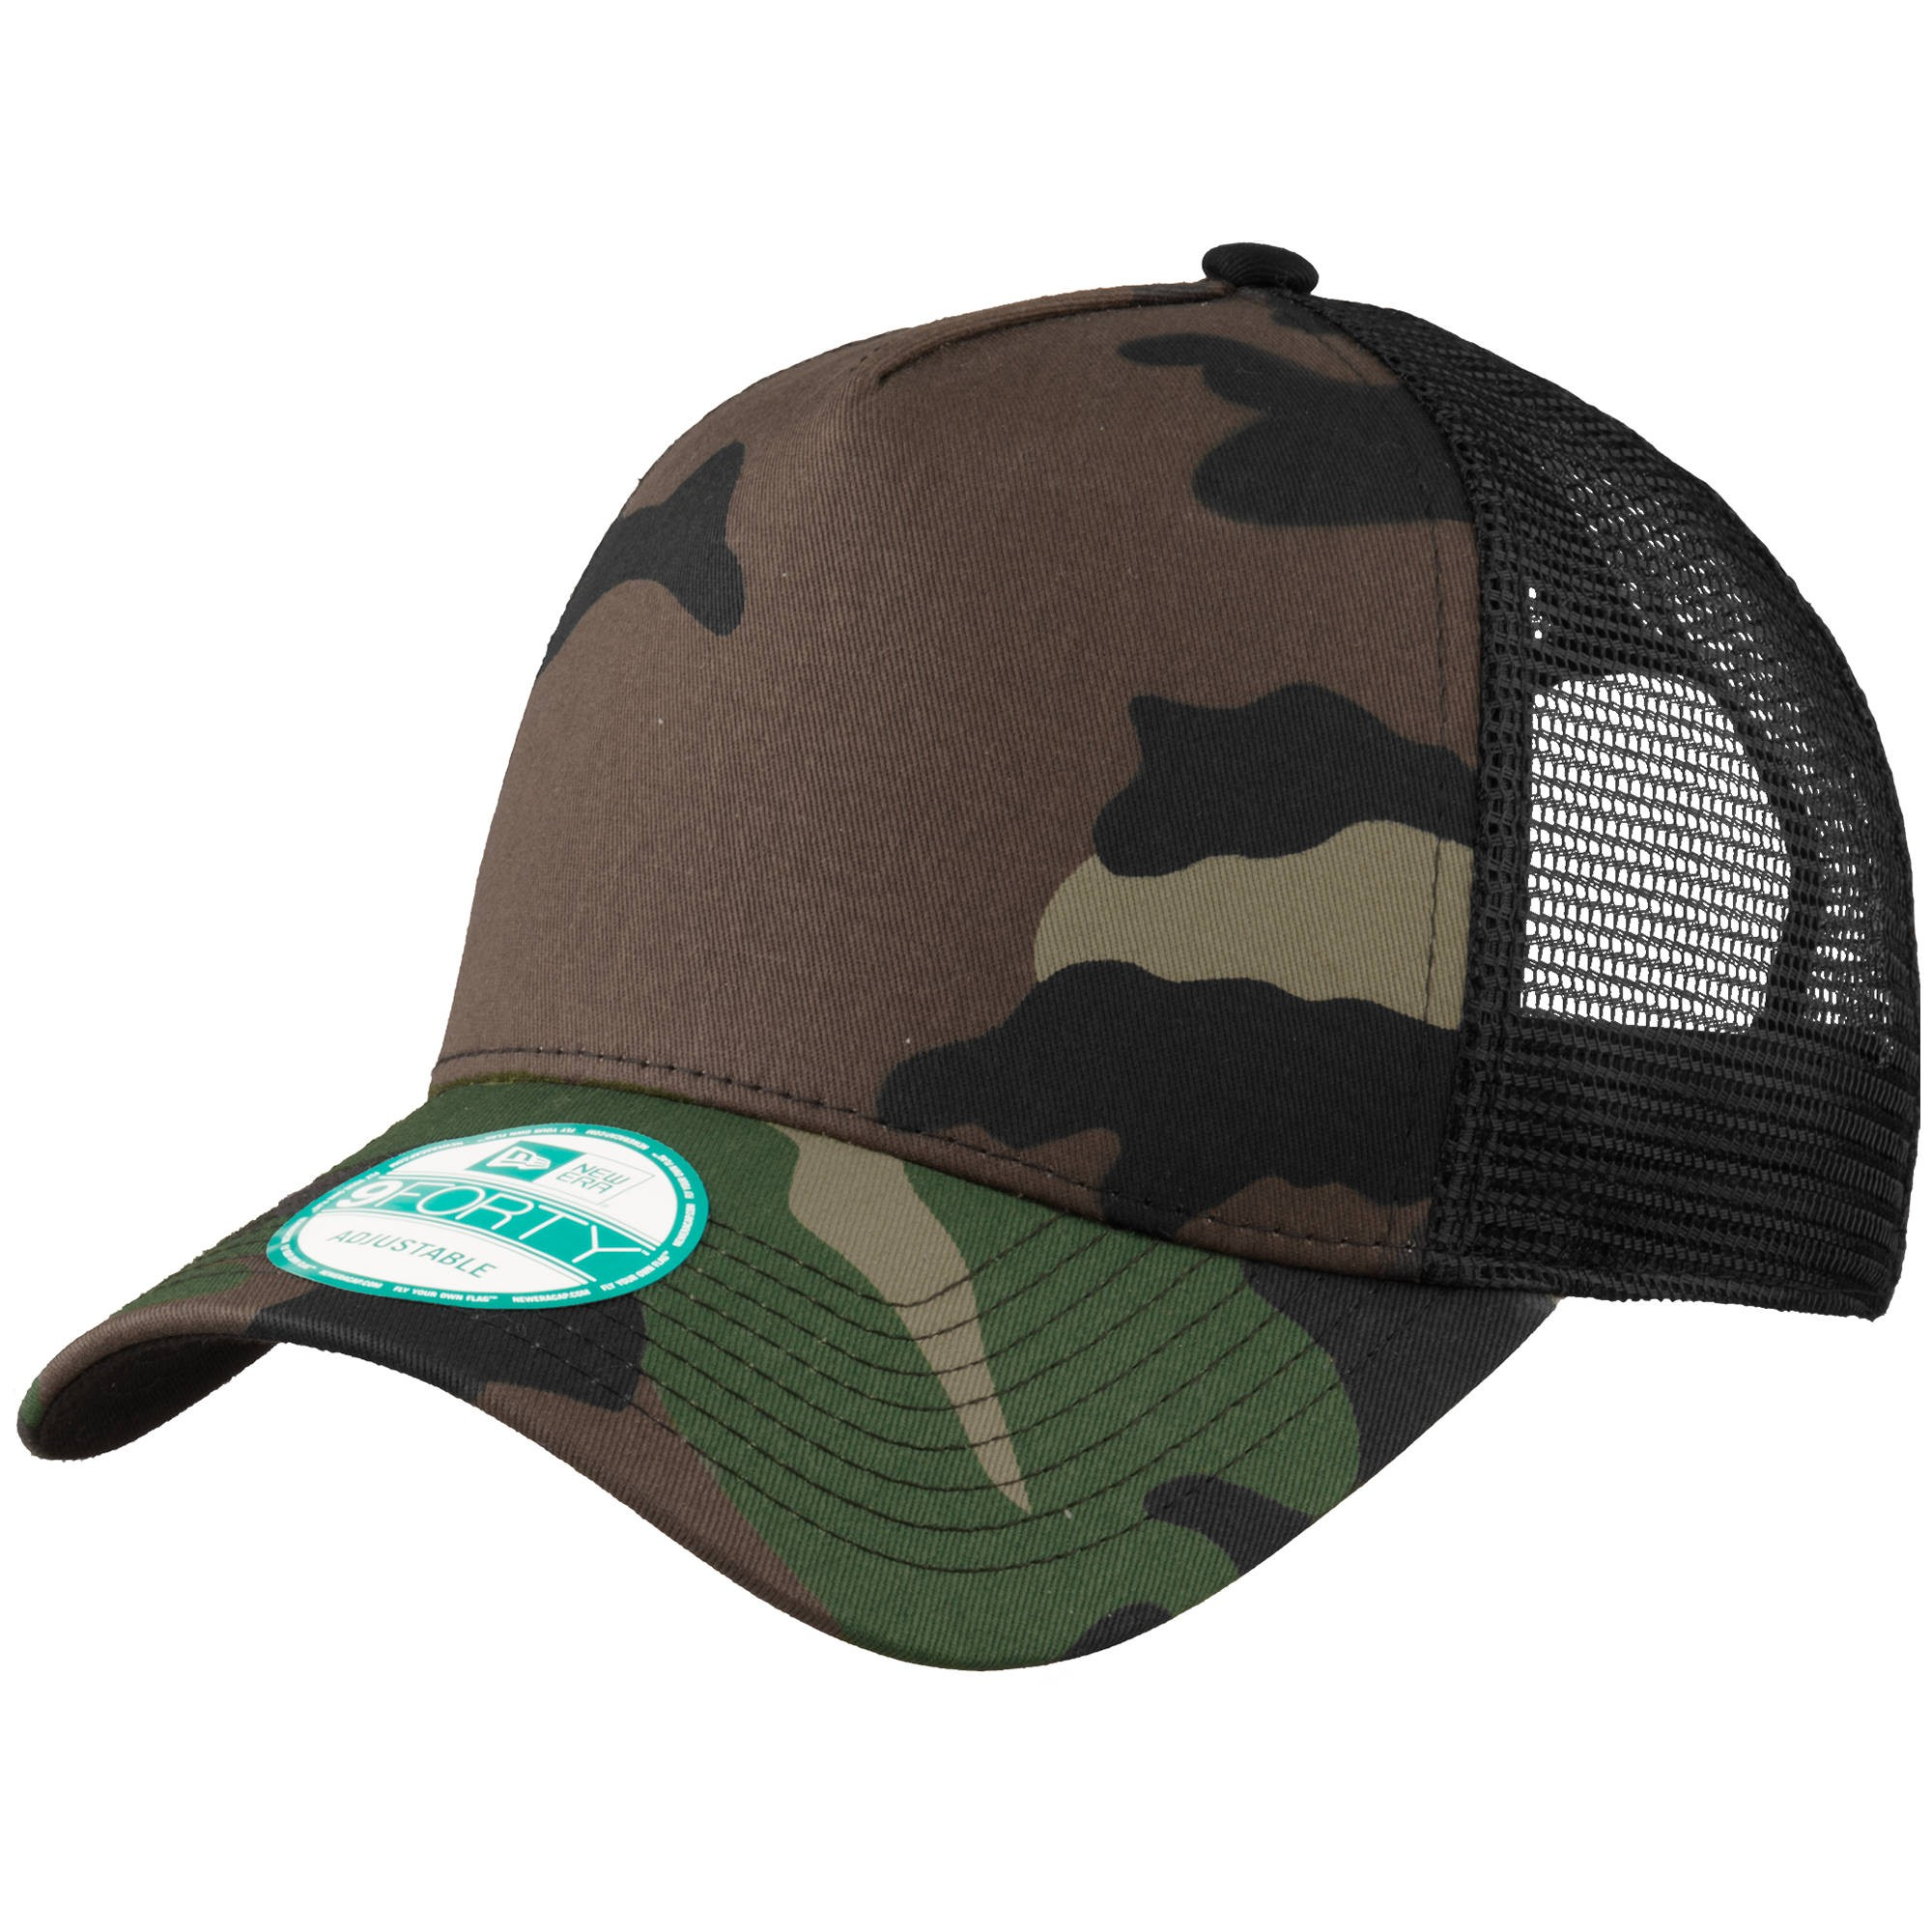 new era ne205 snapback trucker cap camo black. Black Bedroom Furniture Sets. Home Design Ideas